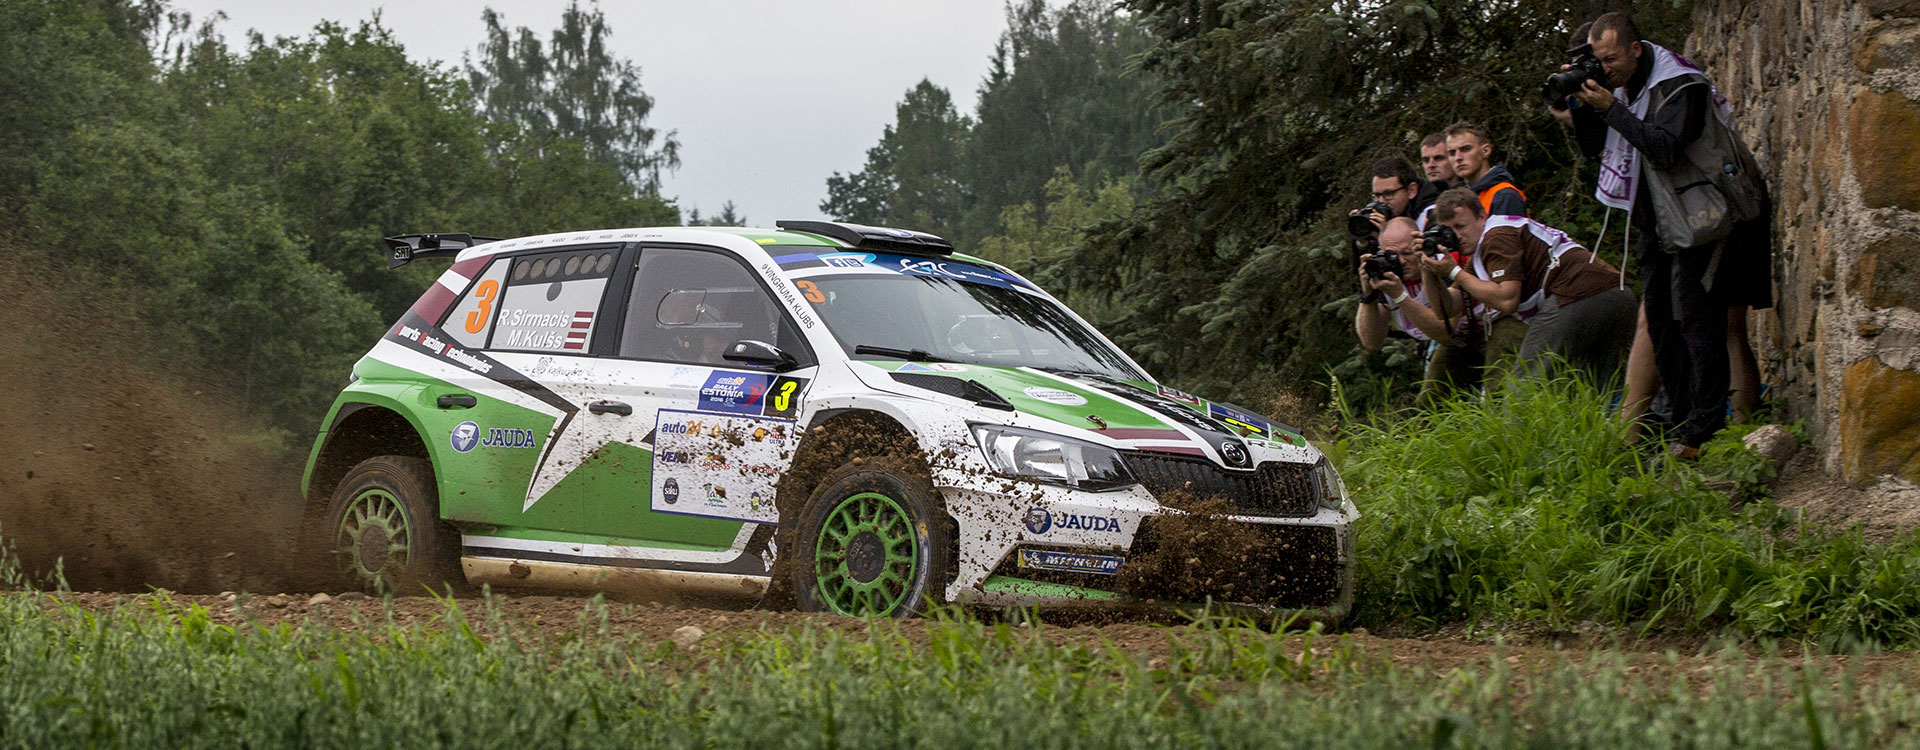 PHOTO: ŠKODA Customer Teams at the Rally Estonia 2016